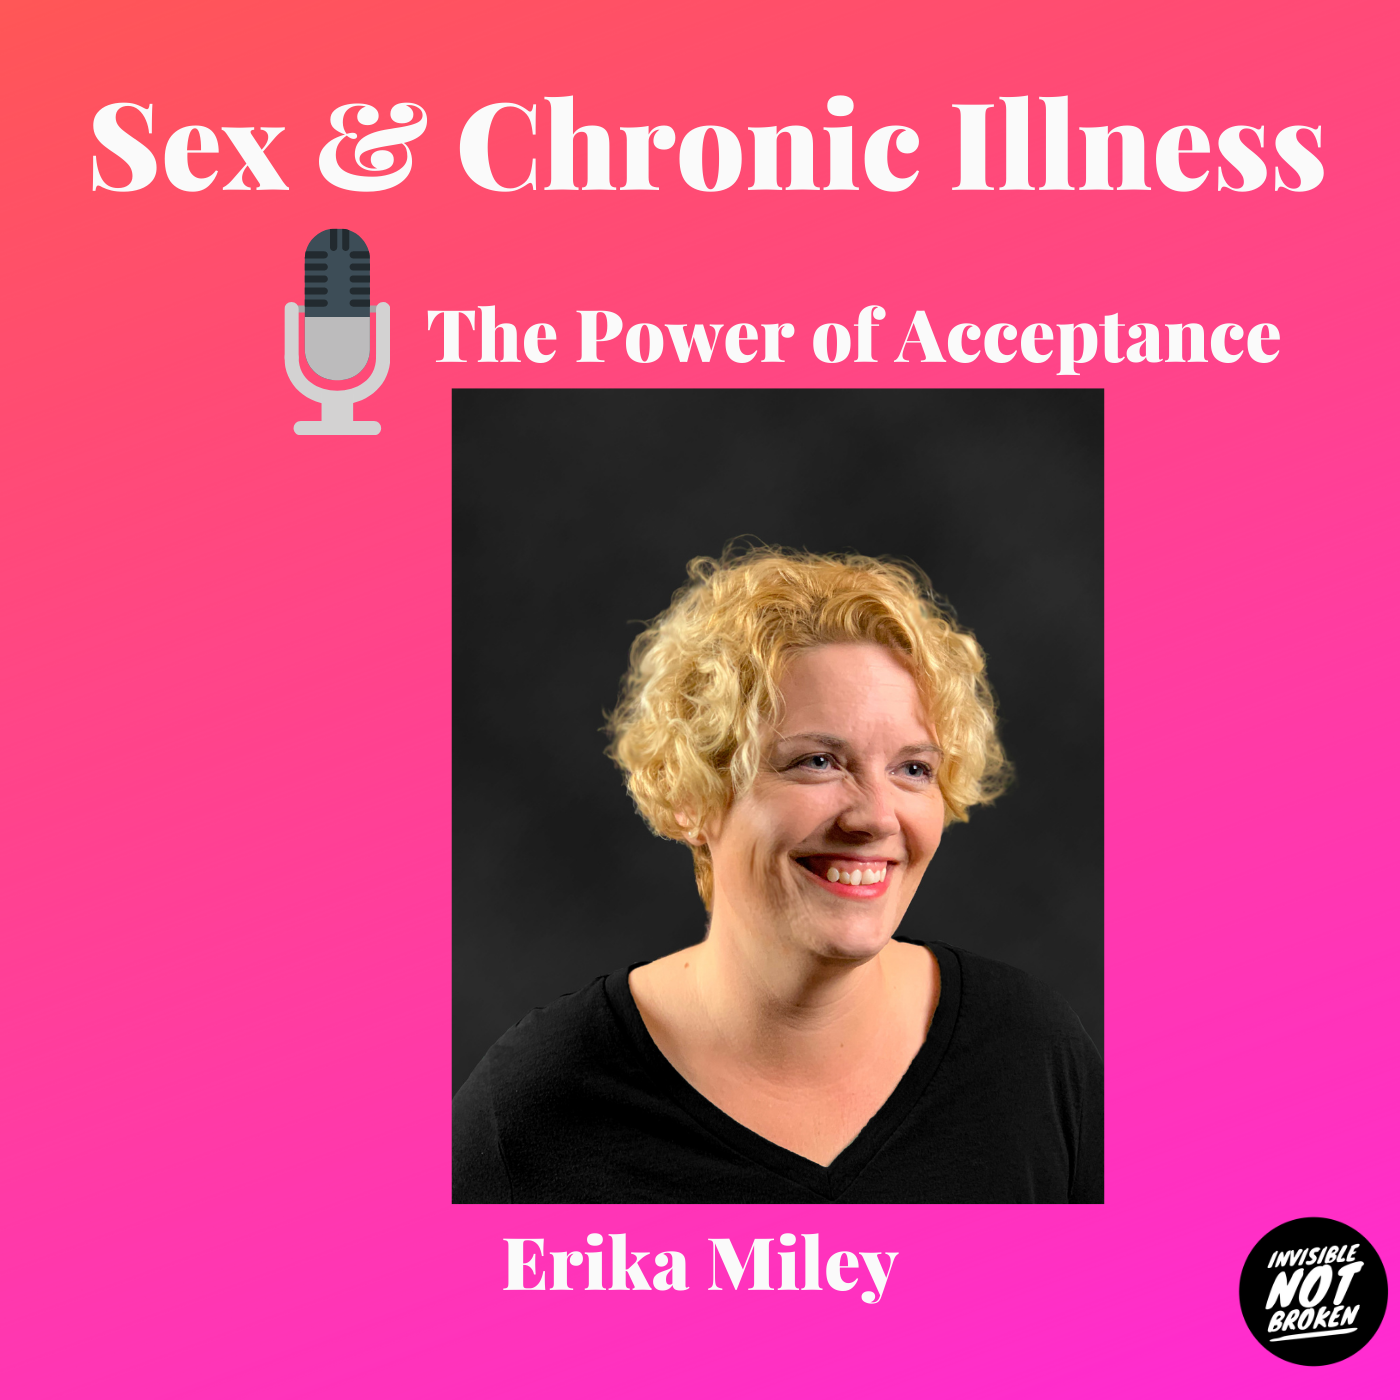 Sex and Chronic Illness - Episode 2: The Power of Acceptance: Erika Miley